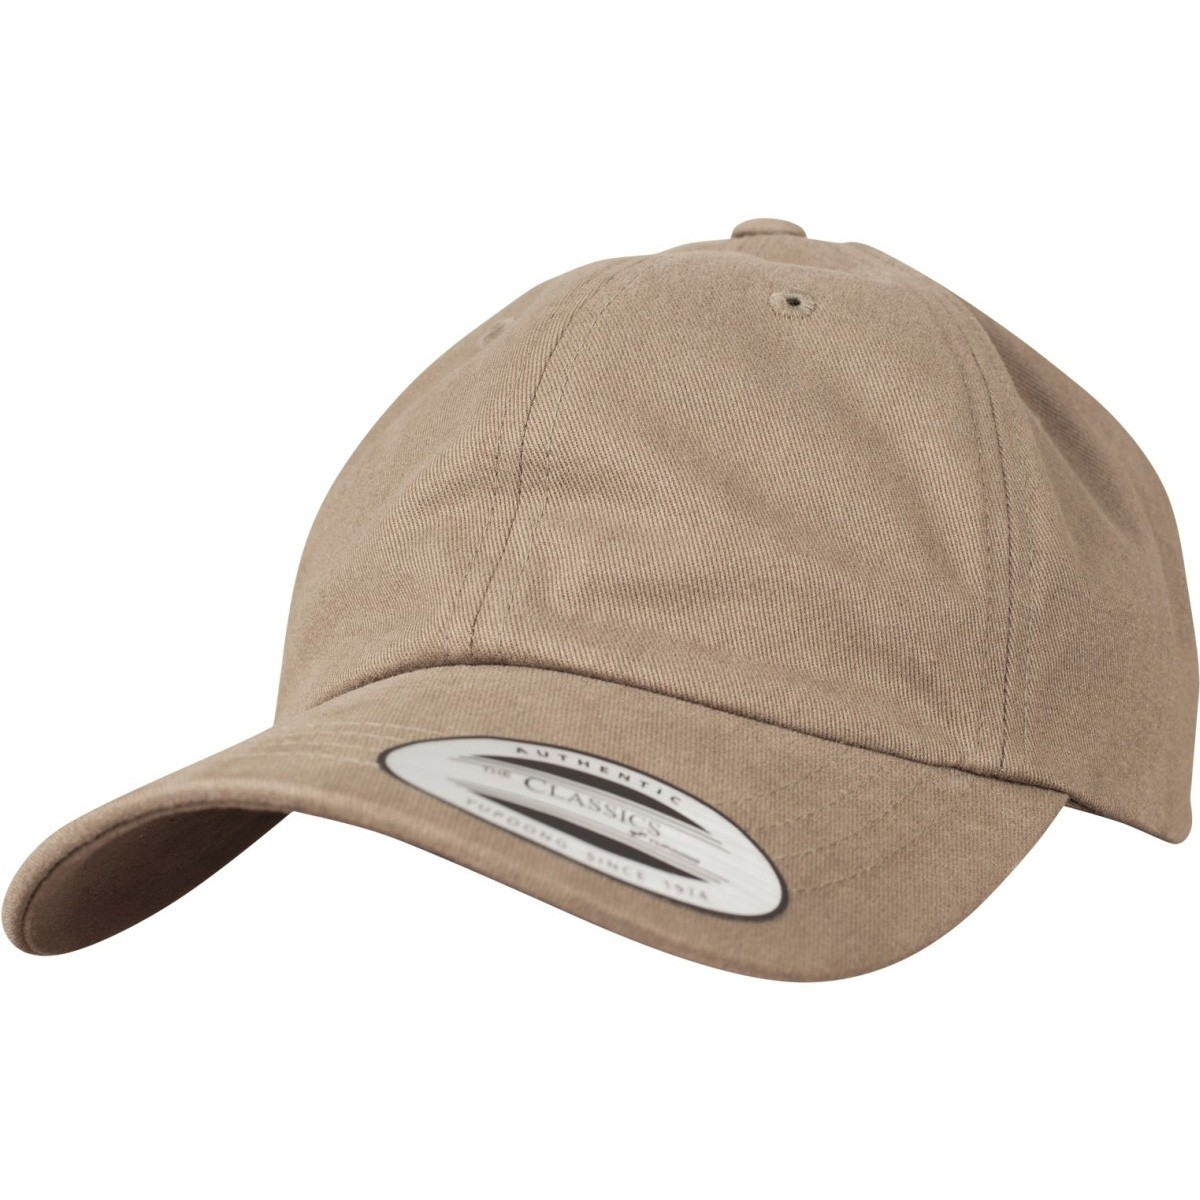 Flexfit Peached Cotton Twill Dad Cap - Loden Brown. About this product.  Picture 1 of 5  Picture 2 of 5 ... ae62513d79cc